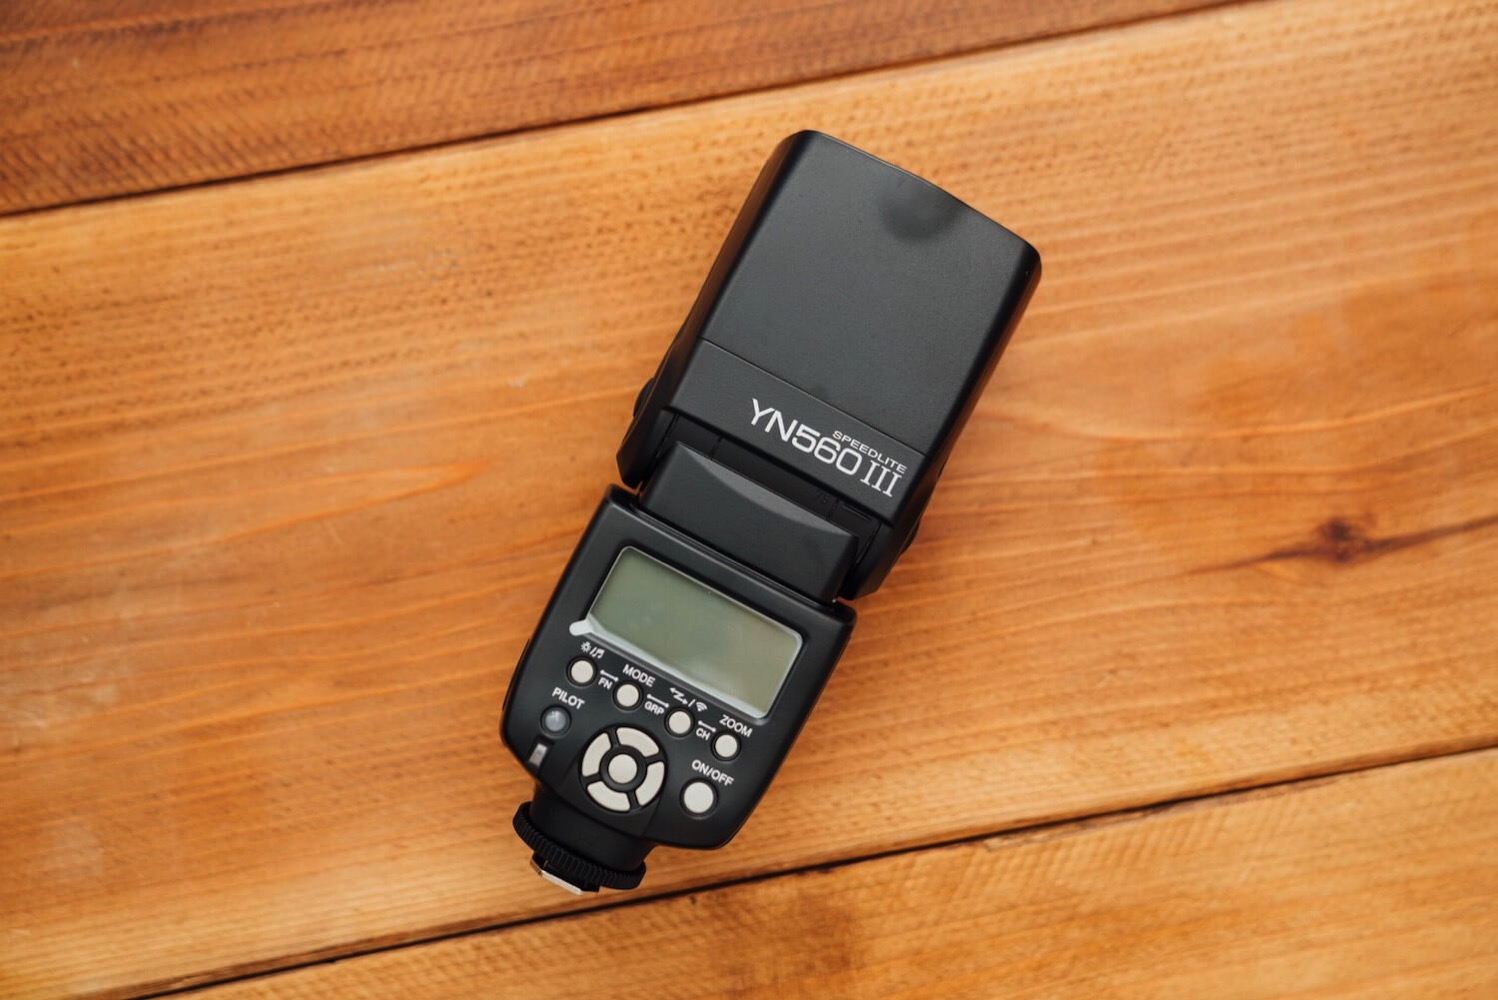 Yongnuo wireless flash triger 0009